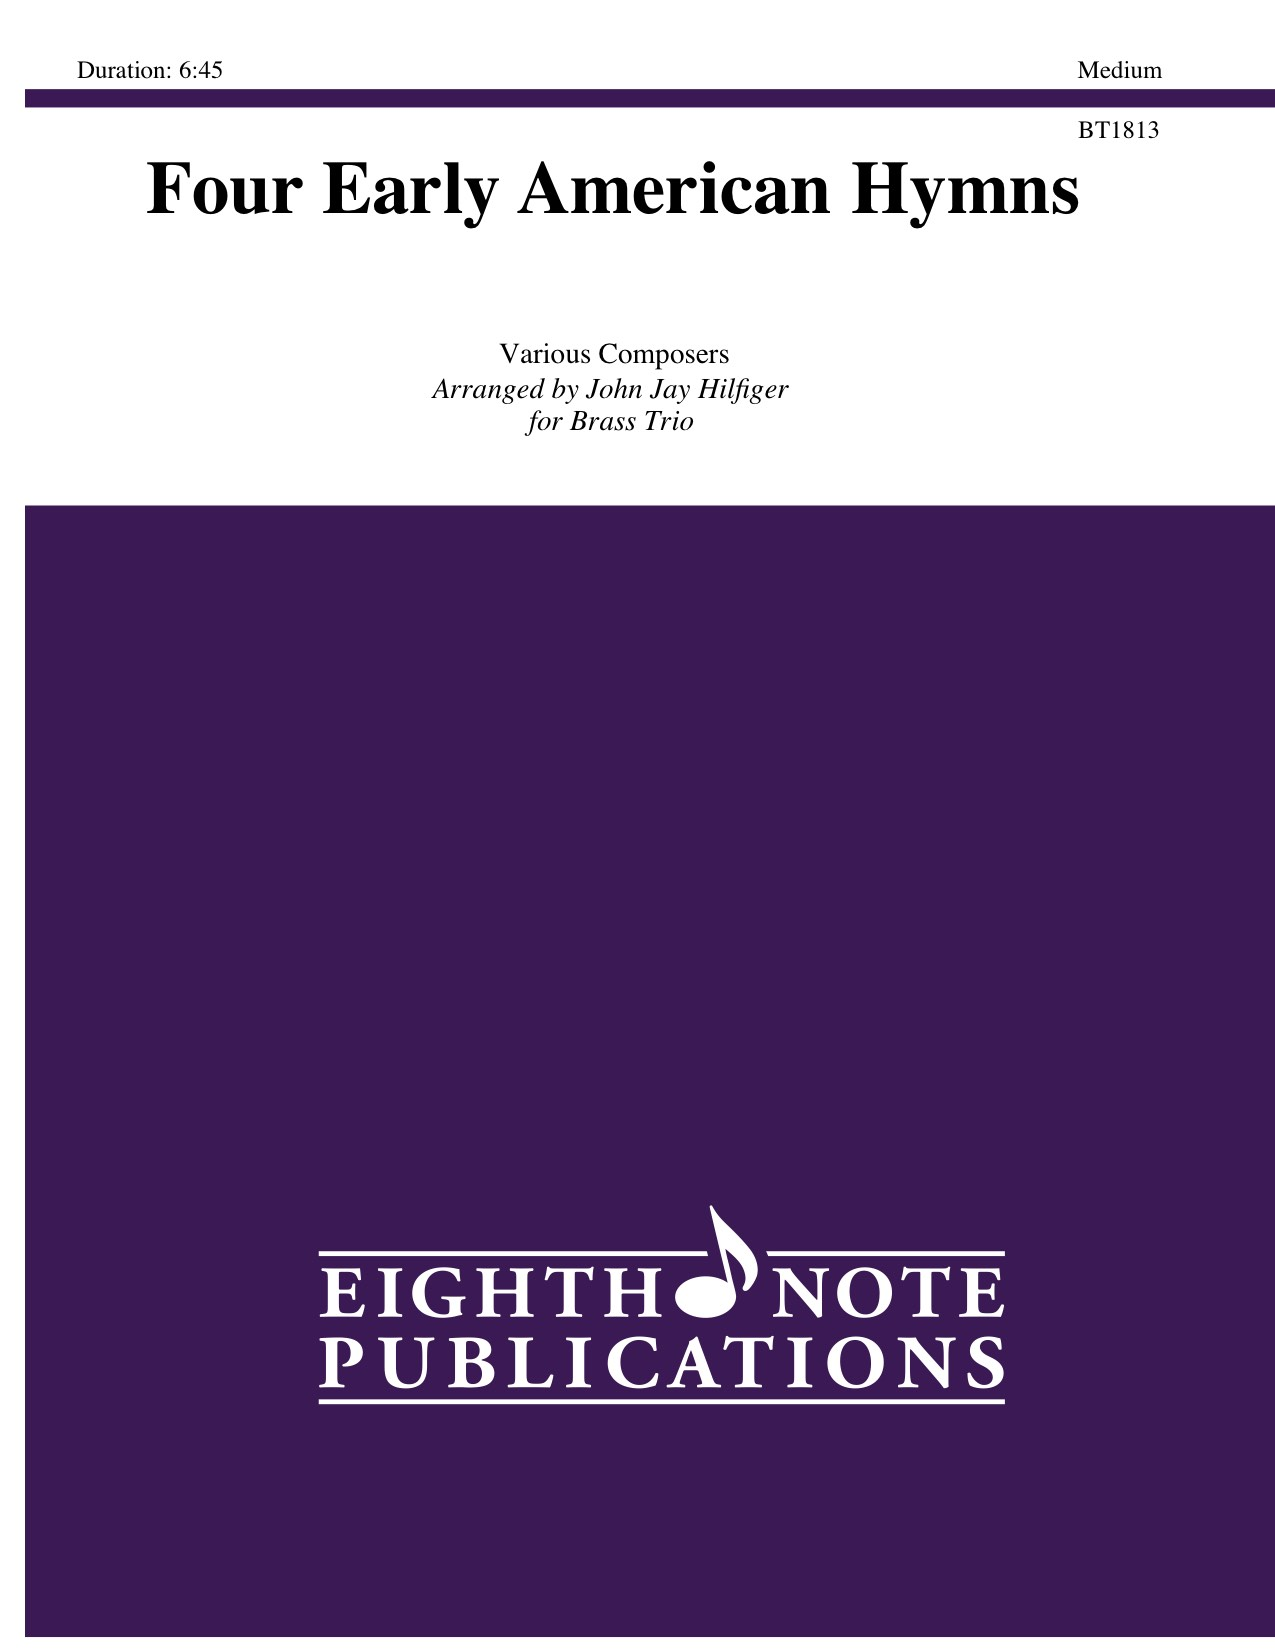 Four Early American Hymns - Various Composers